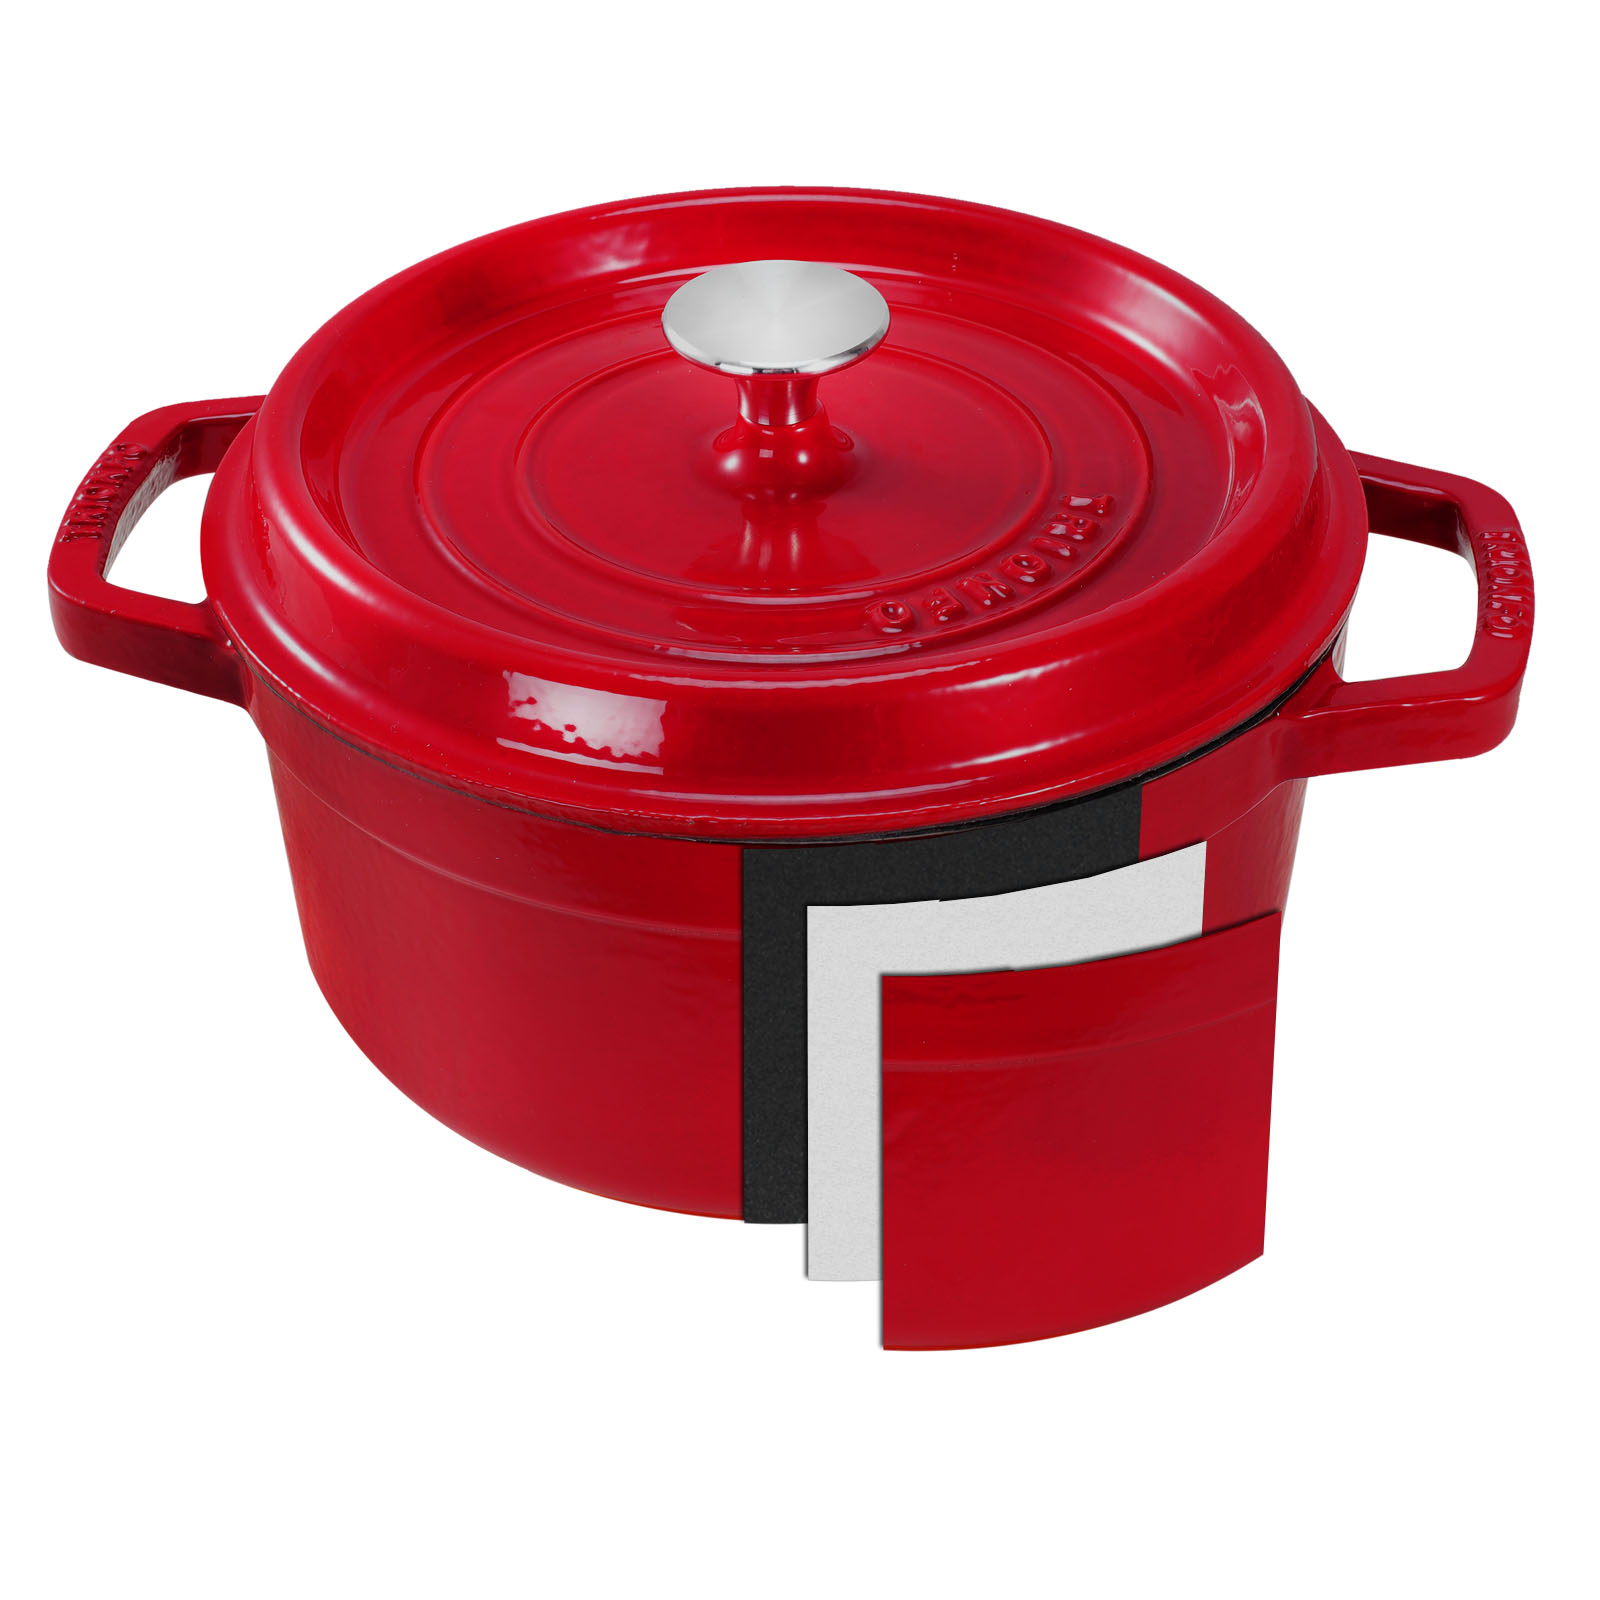 4 5 quart enameled cast iron dutch oven pot lid stove cookware home kitchen red. Black Bedroom Furniture Sets. Home Design Ideas